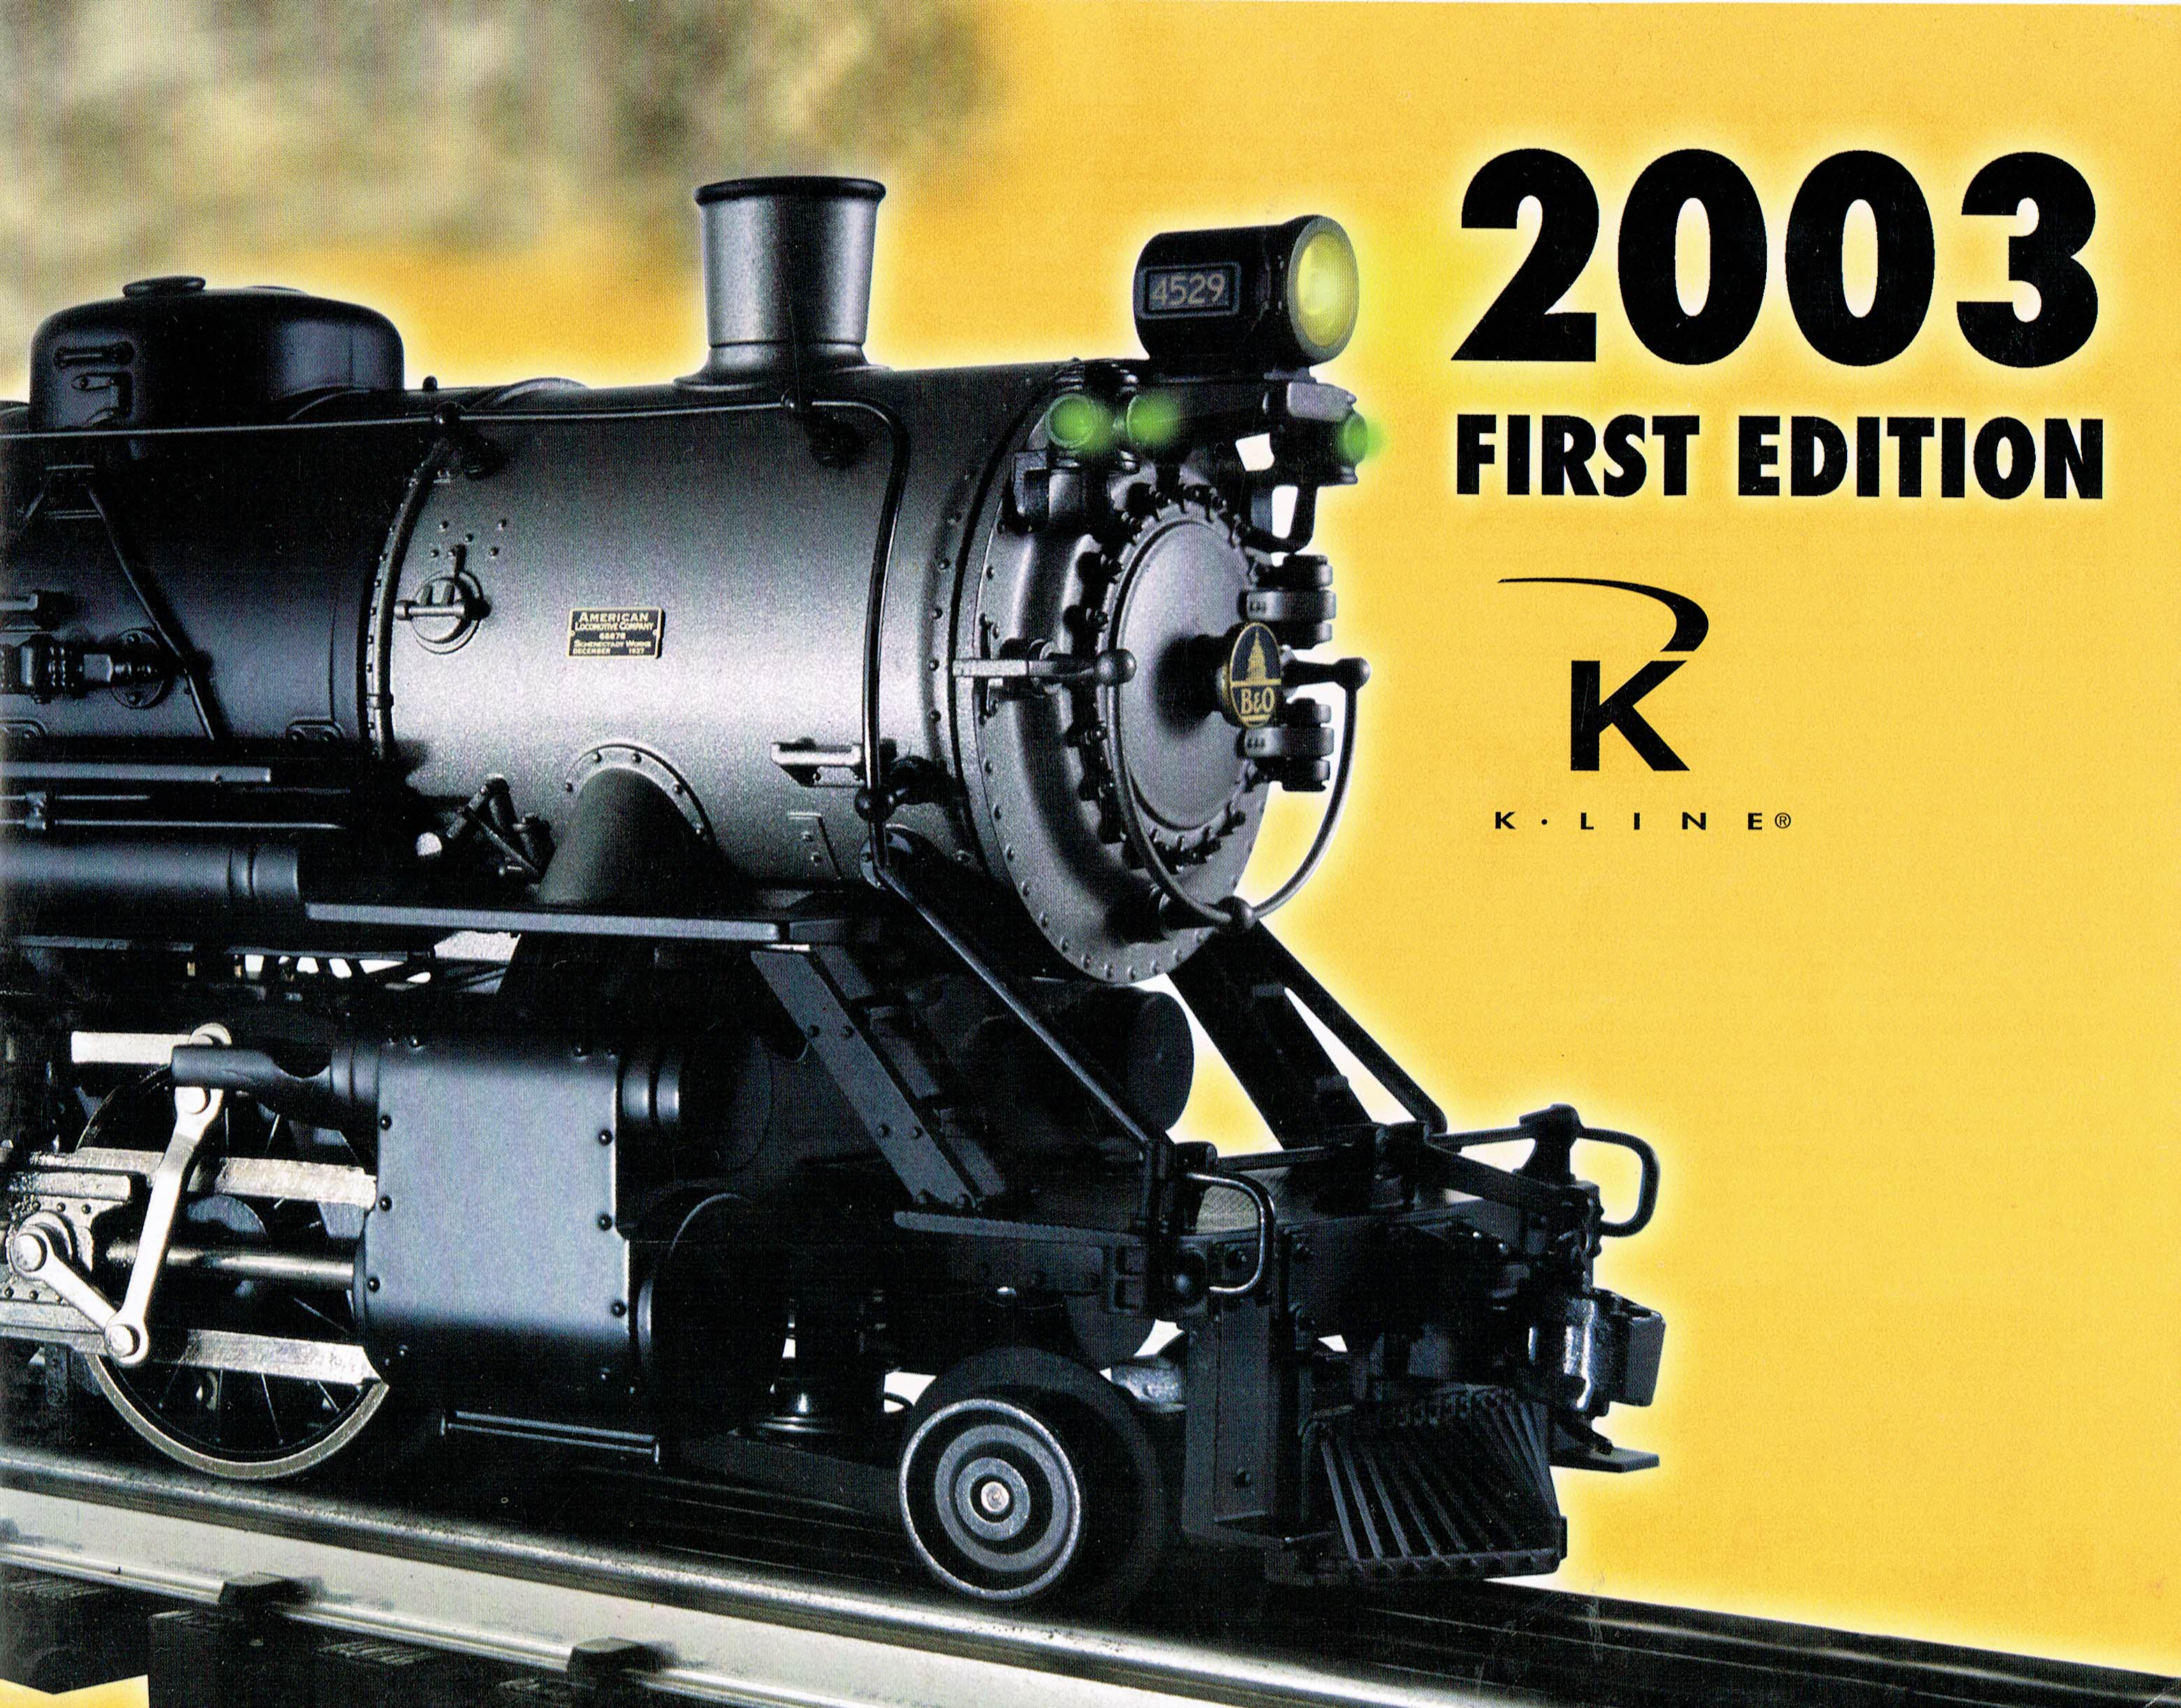 K-Line 2003 First Edition Catalog image